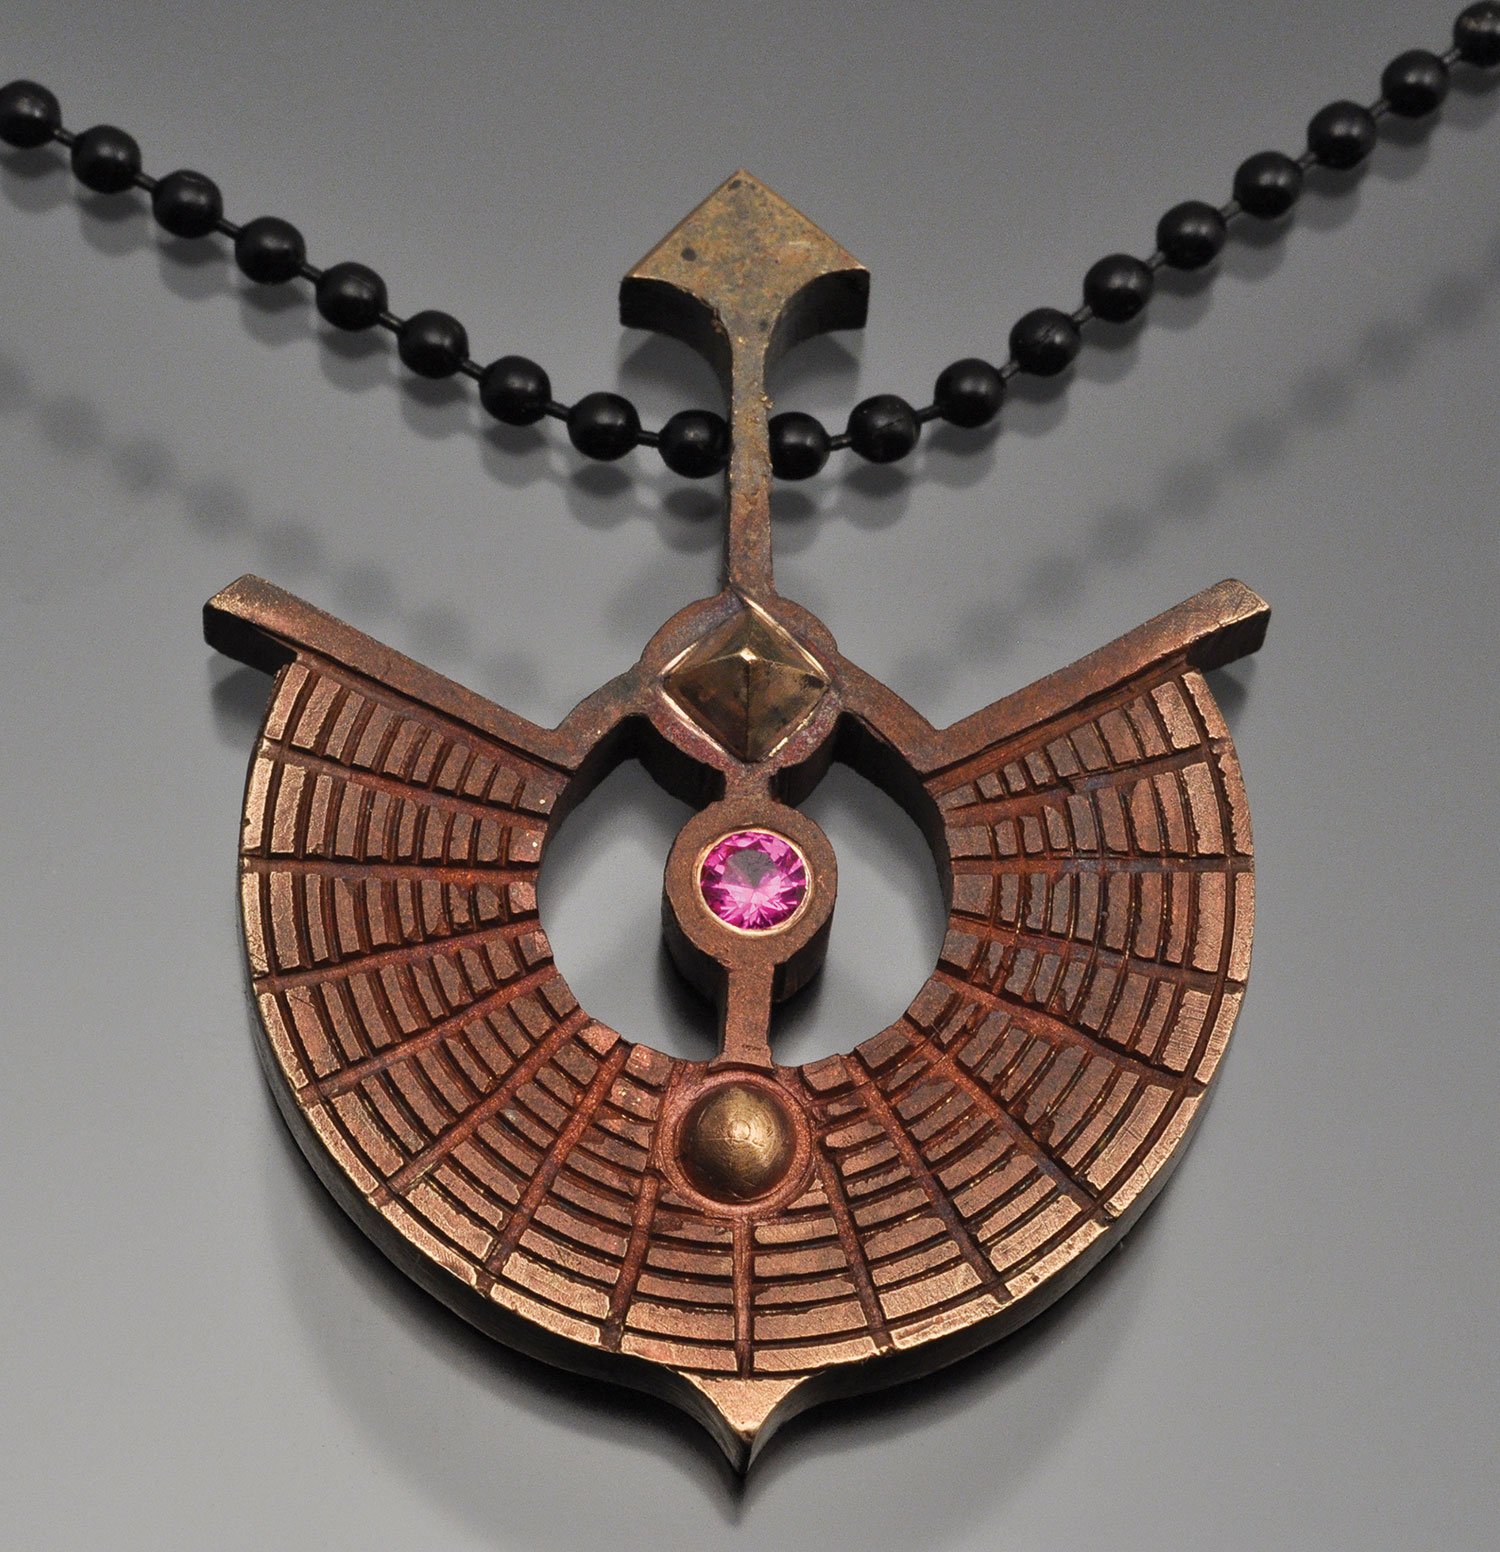 The Jewelry Of Burning Man Comes To Fuller Craft Museum